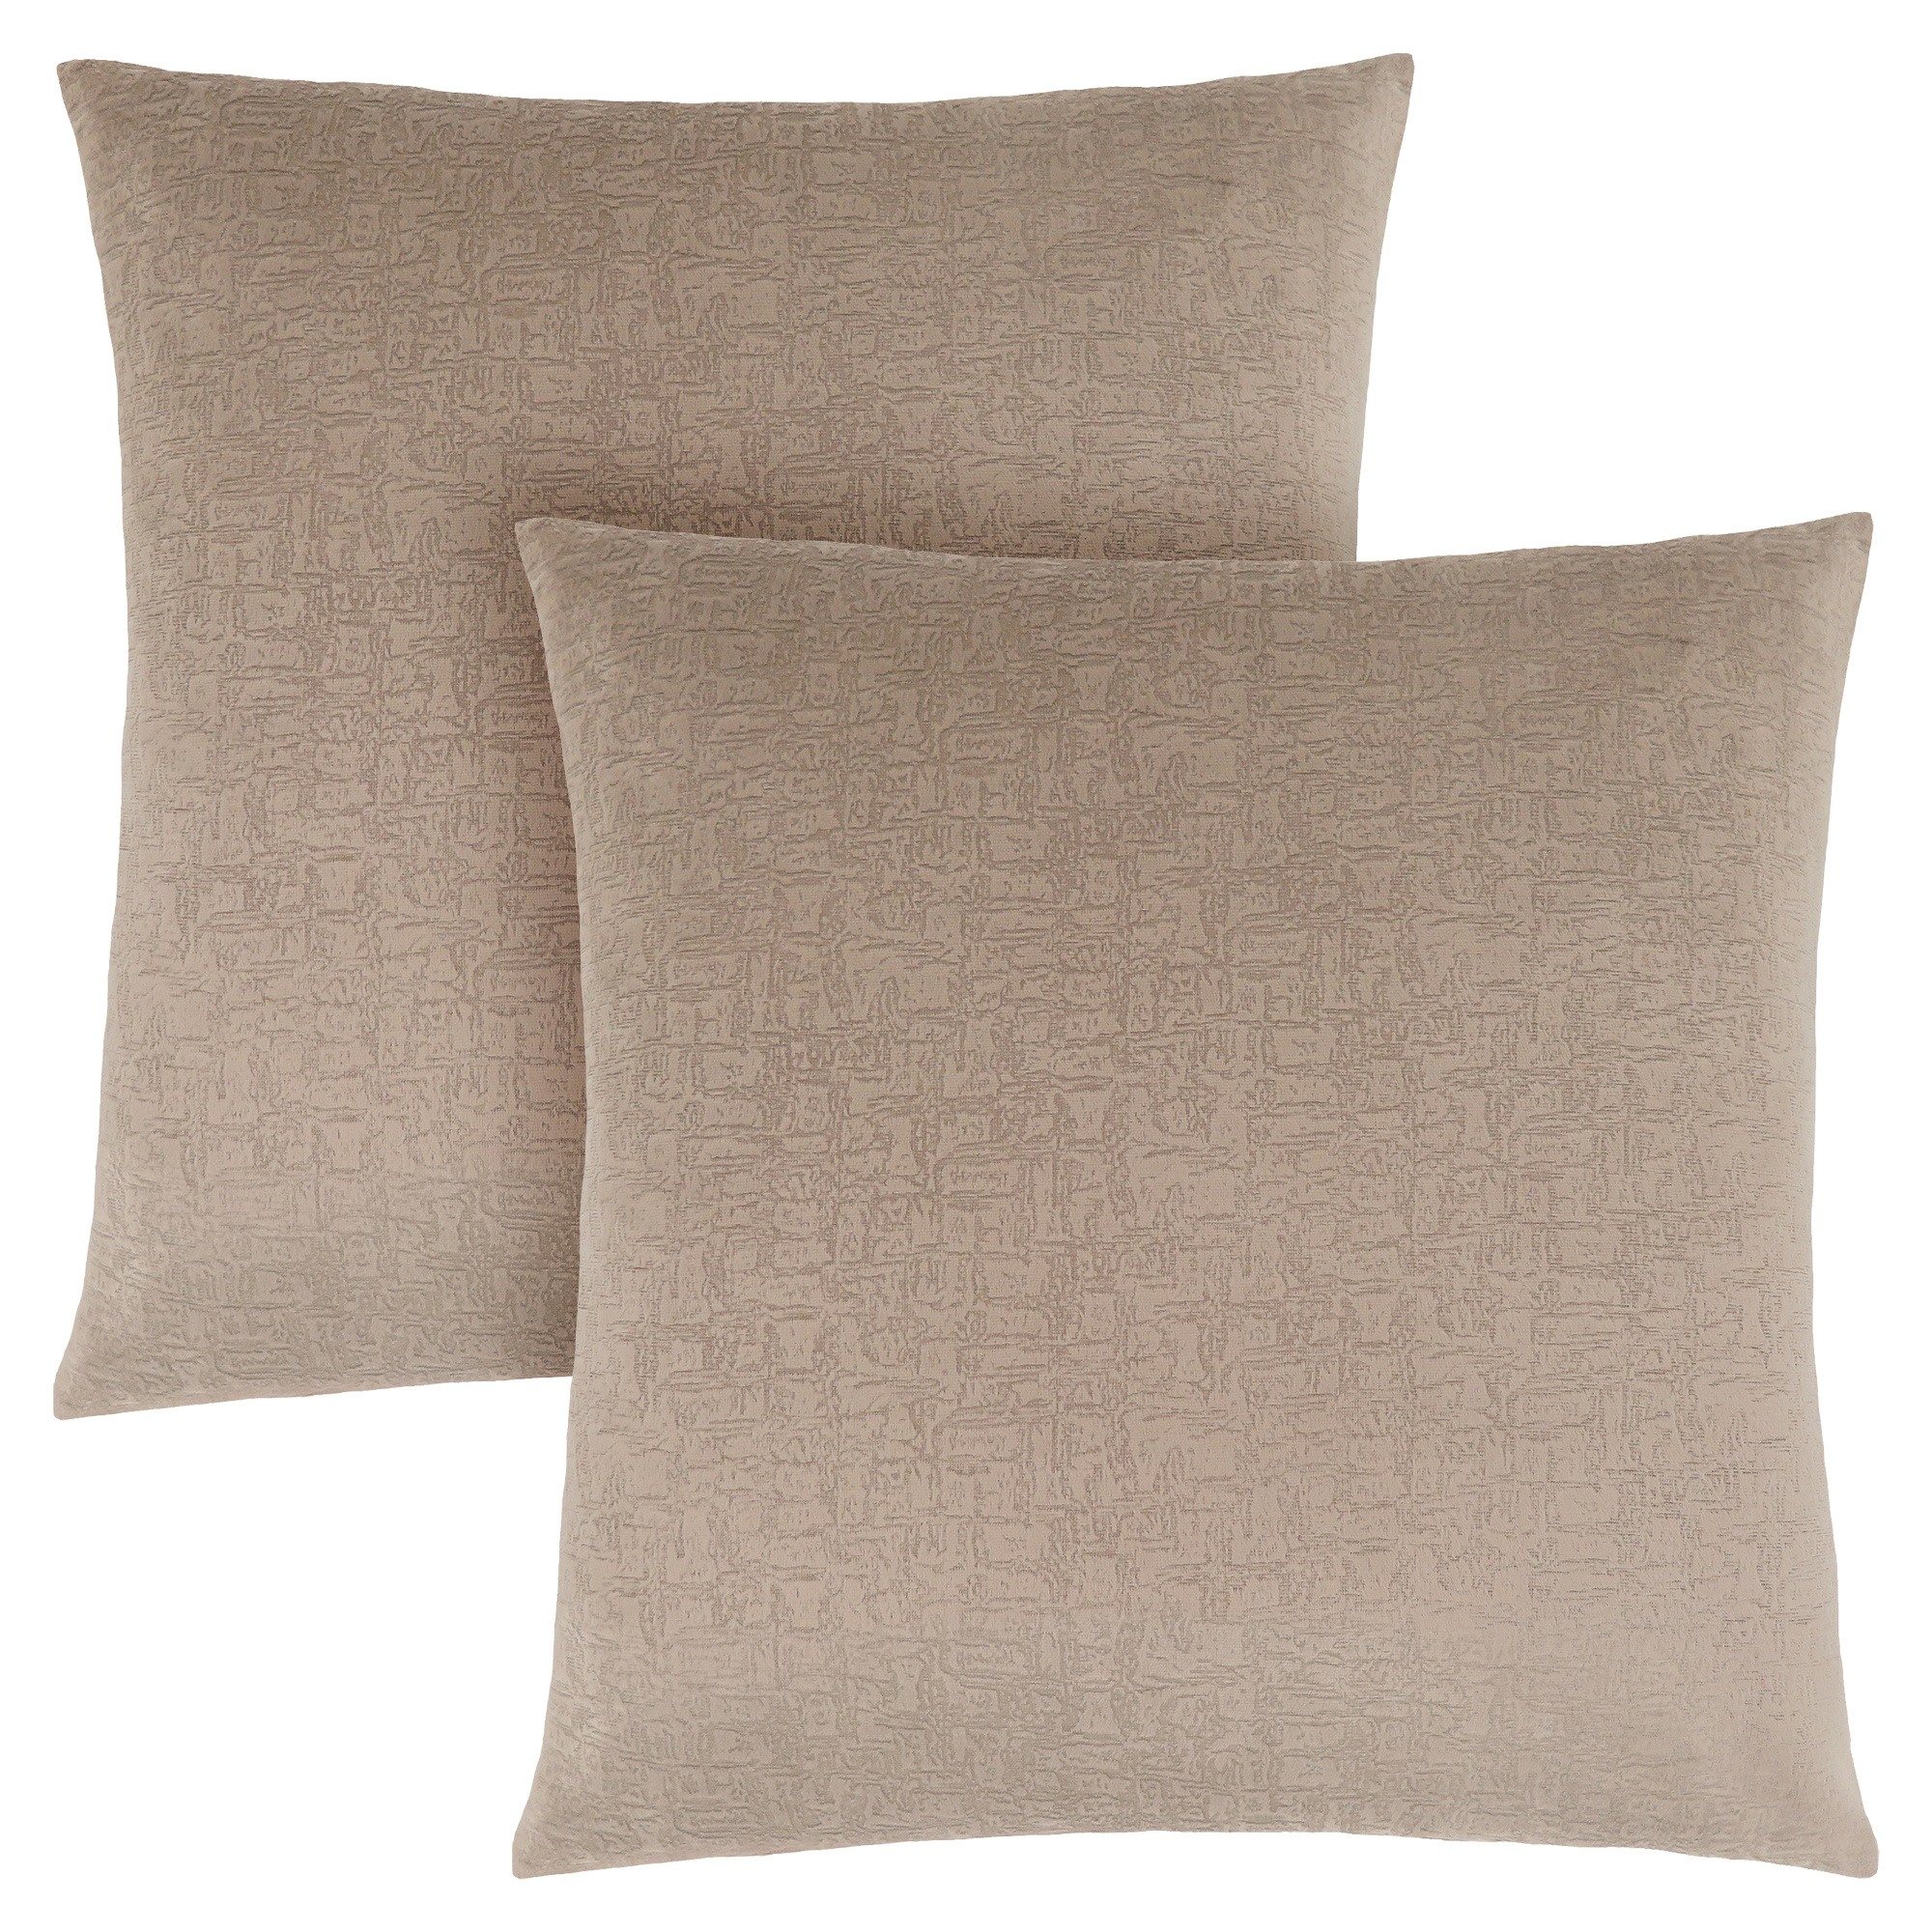 "PILLOW - 18""X 18"" / TAUPE MOSAIC VELVET / 2PCS"